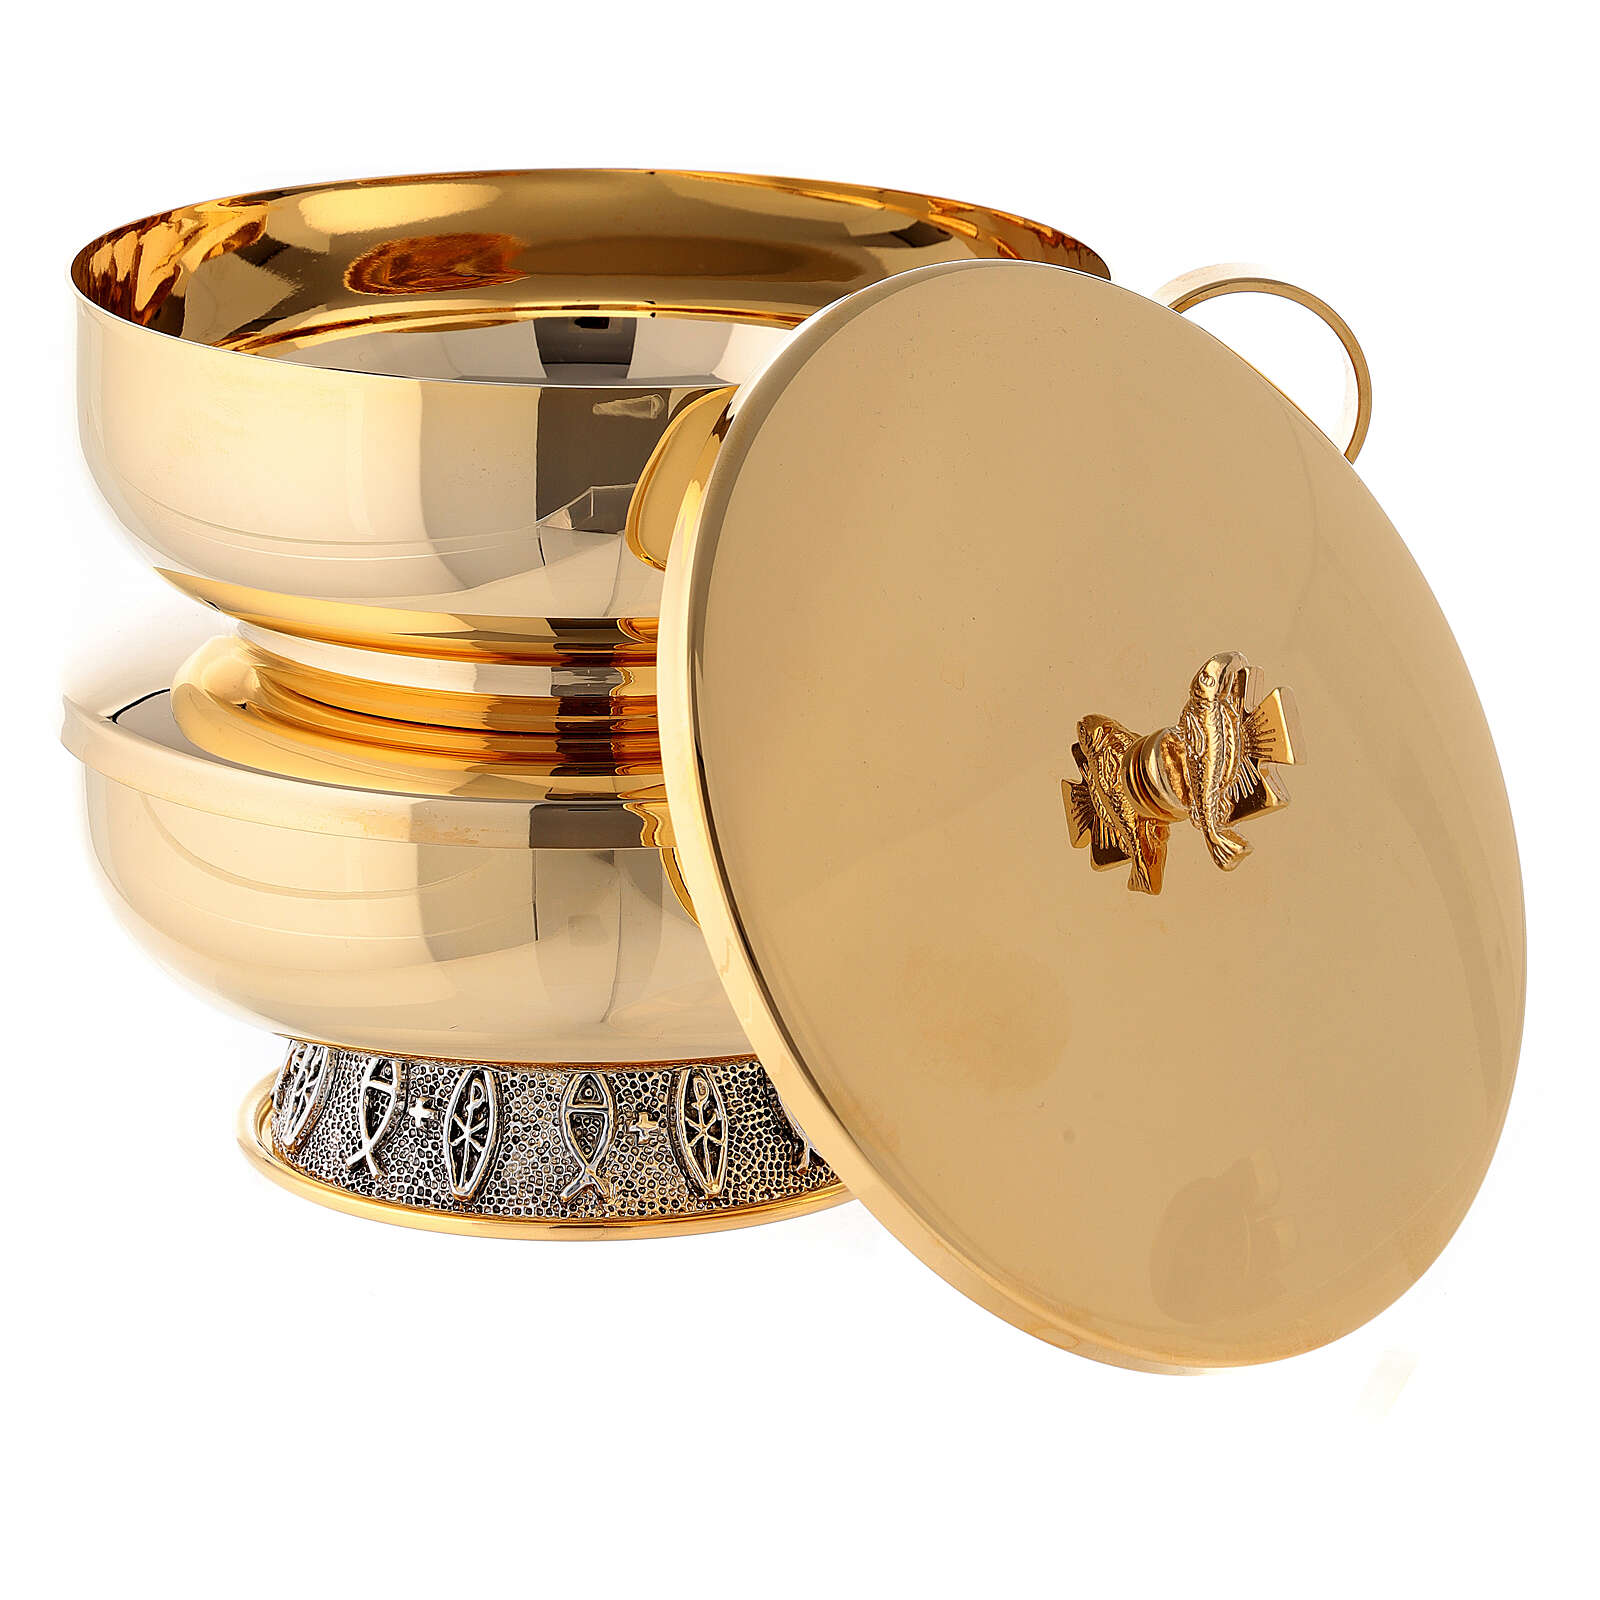 Stacking ciboria set in polished brass diameter 5 1/2 in 4